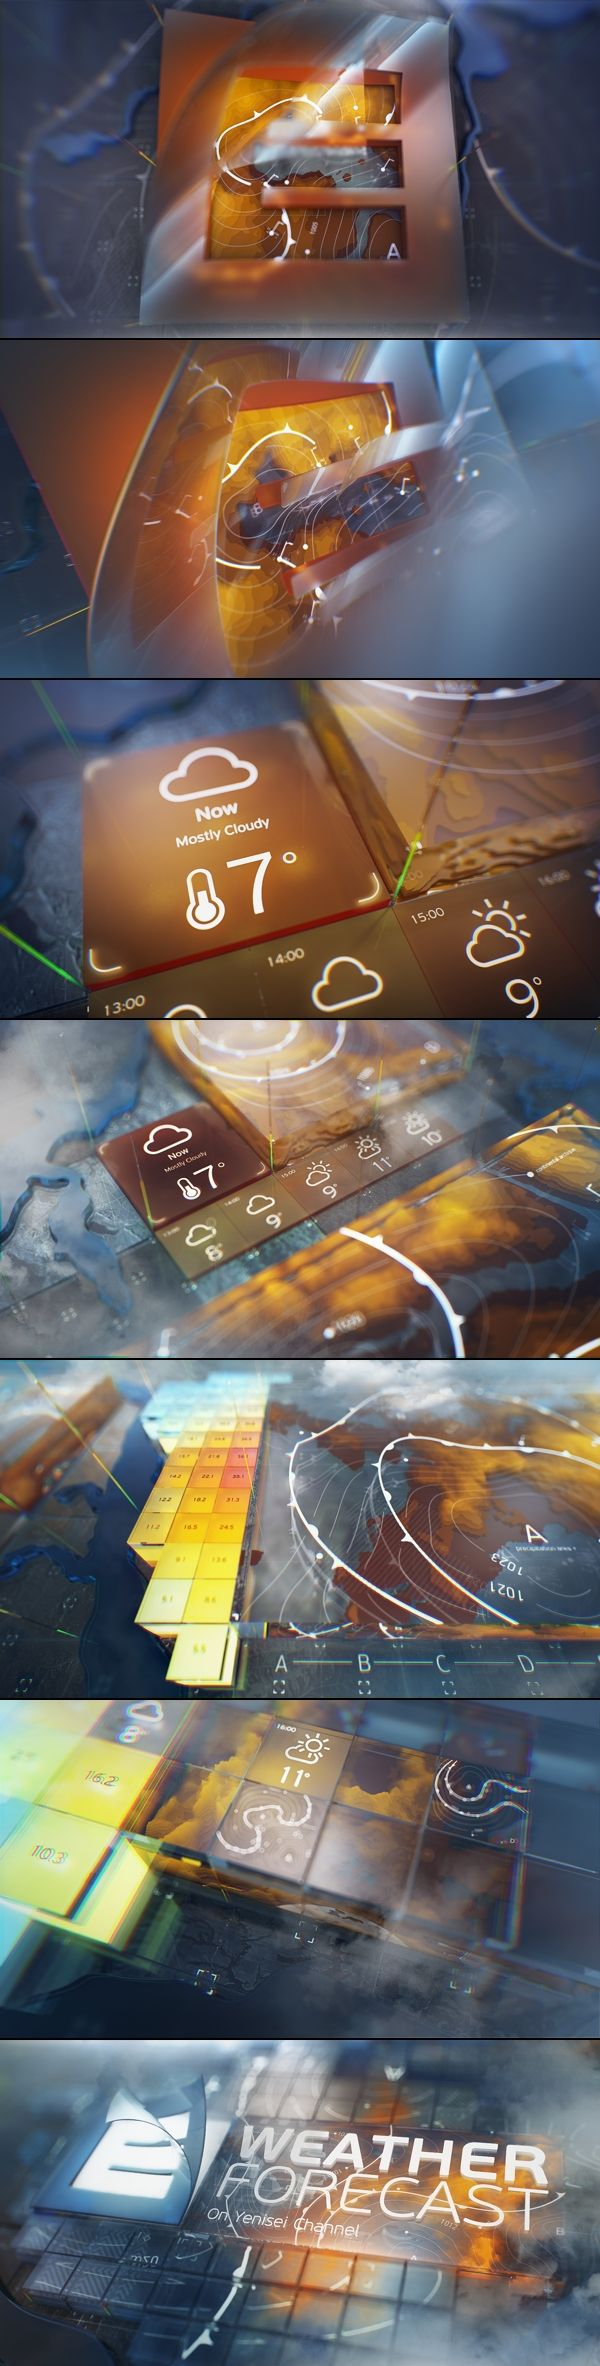 yenisei. weather forecast id. by Serge Aleynikov, via Behance